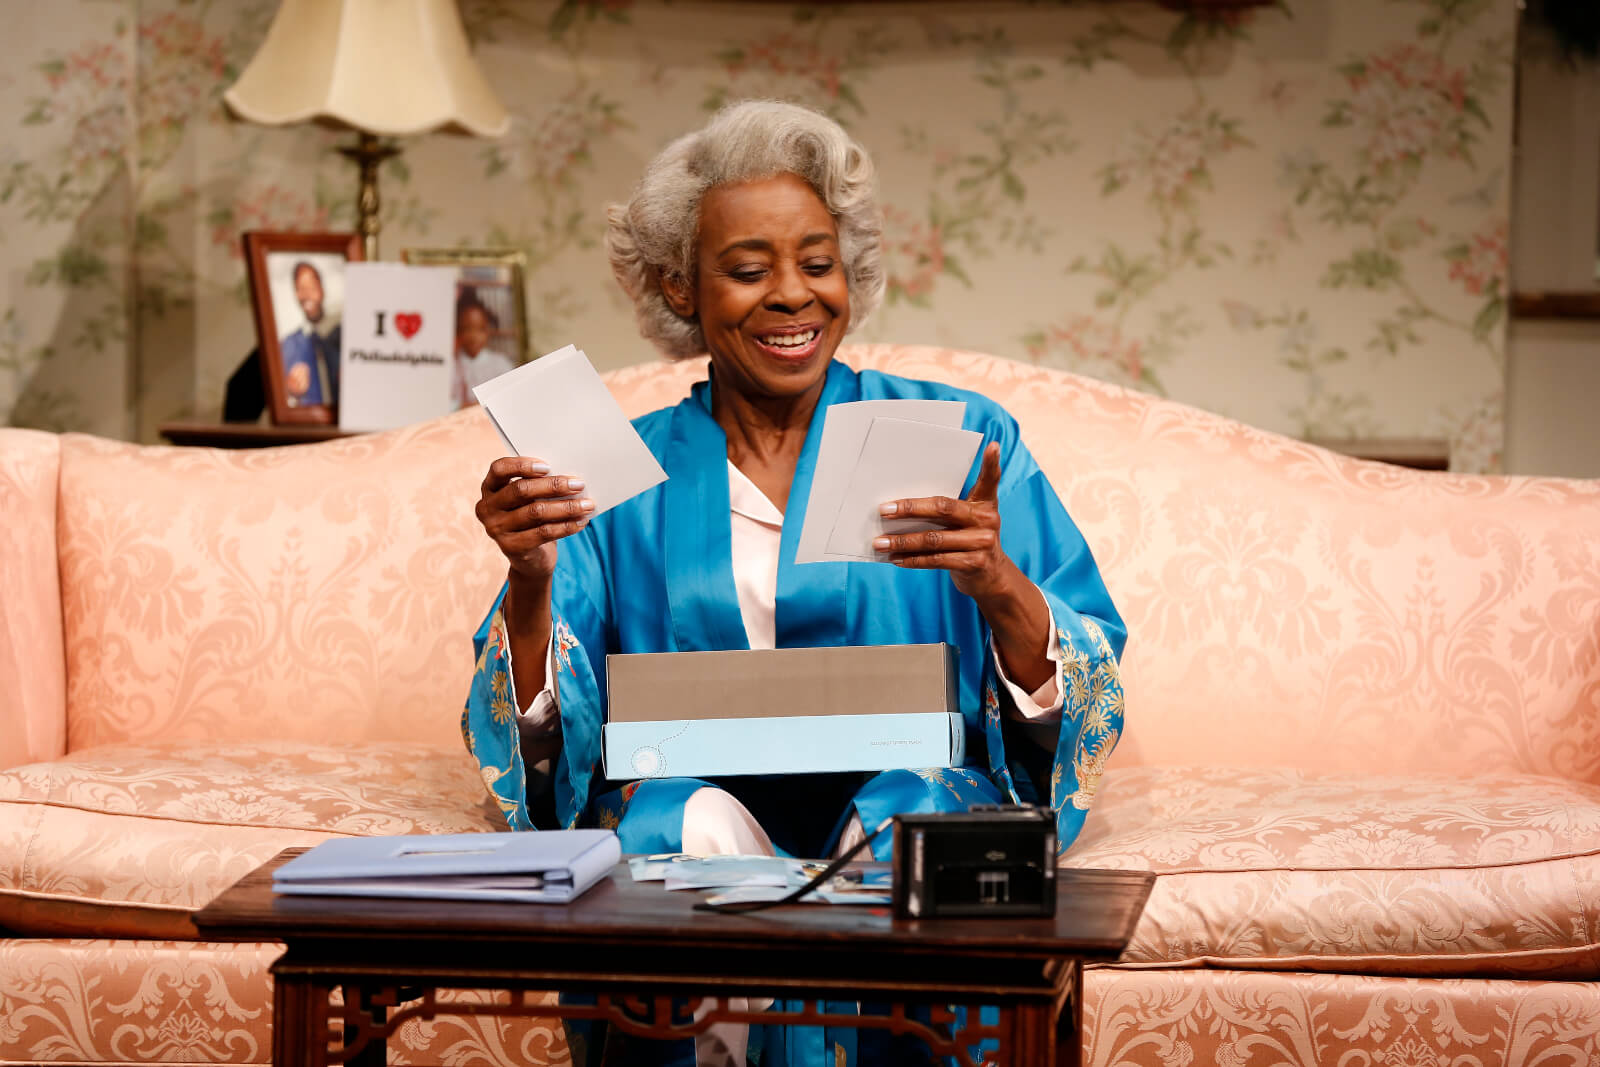 Dotty (Marjorie Johnson) pulls photos out of a shoebox and smiles while sitting on a couch.